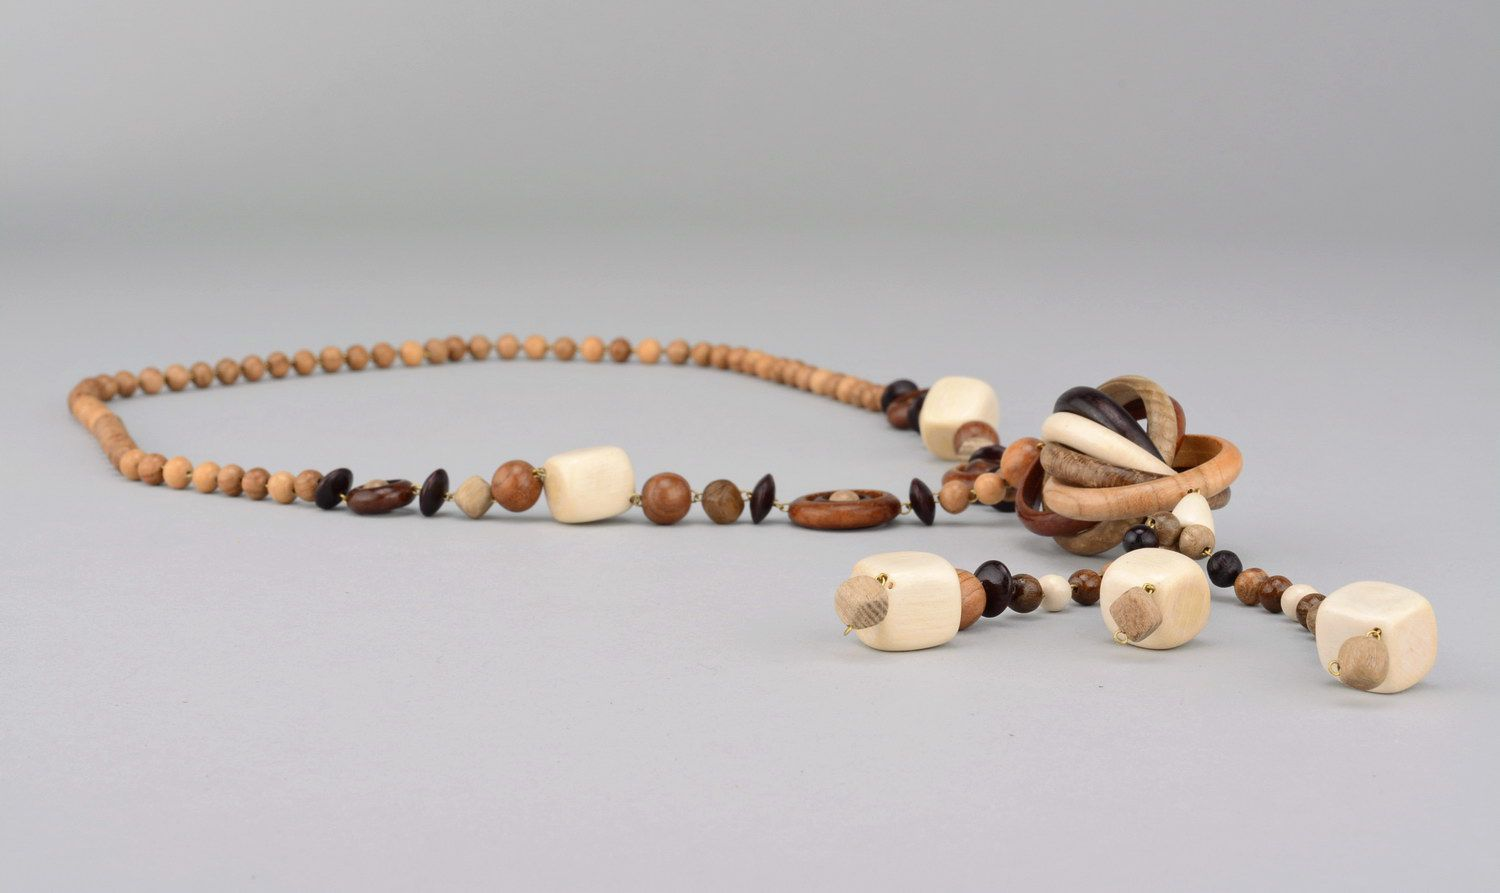 Long beads made of different wood species without clasps photo 2